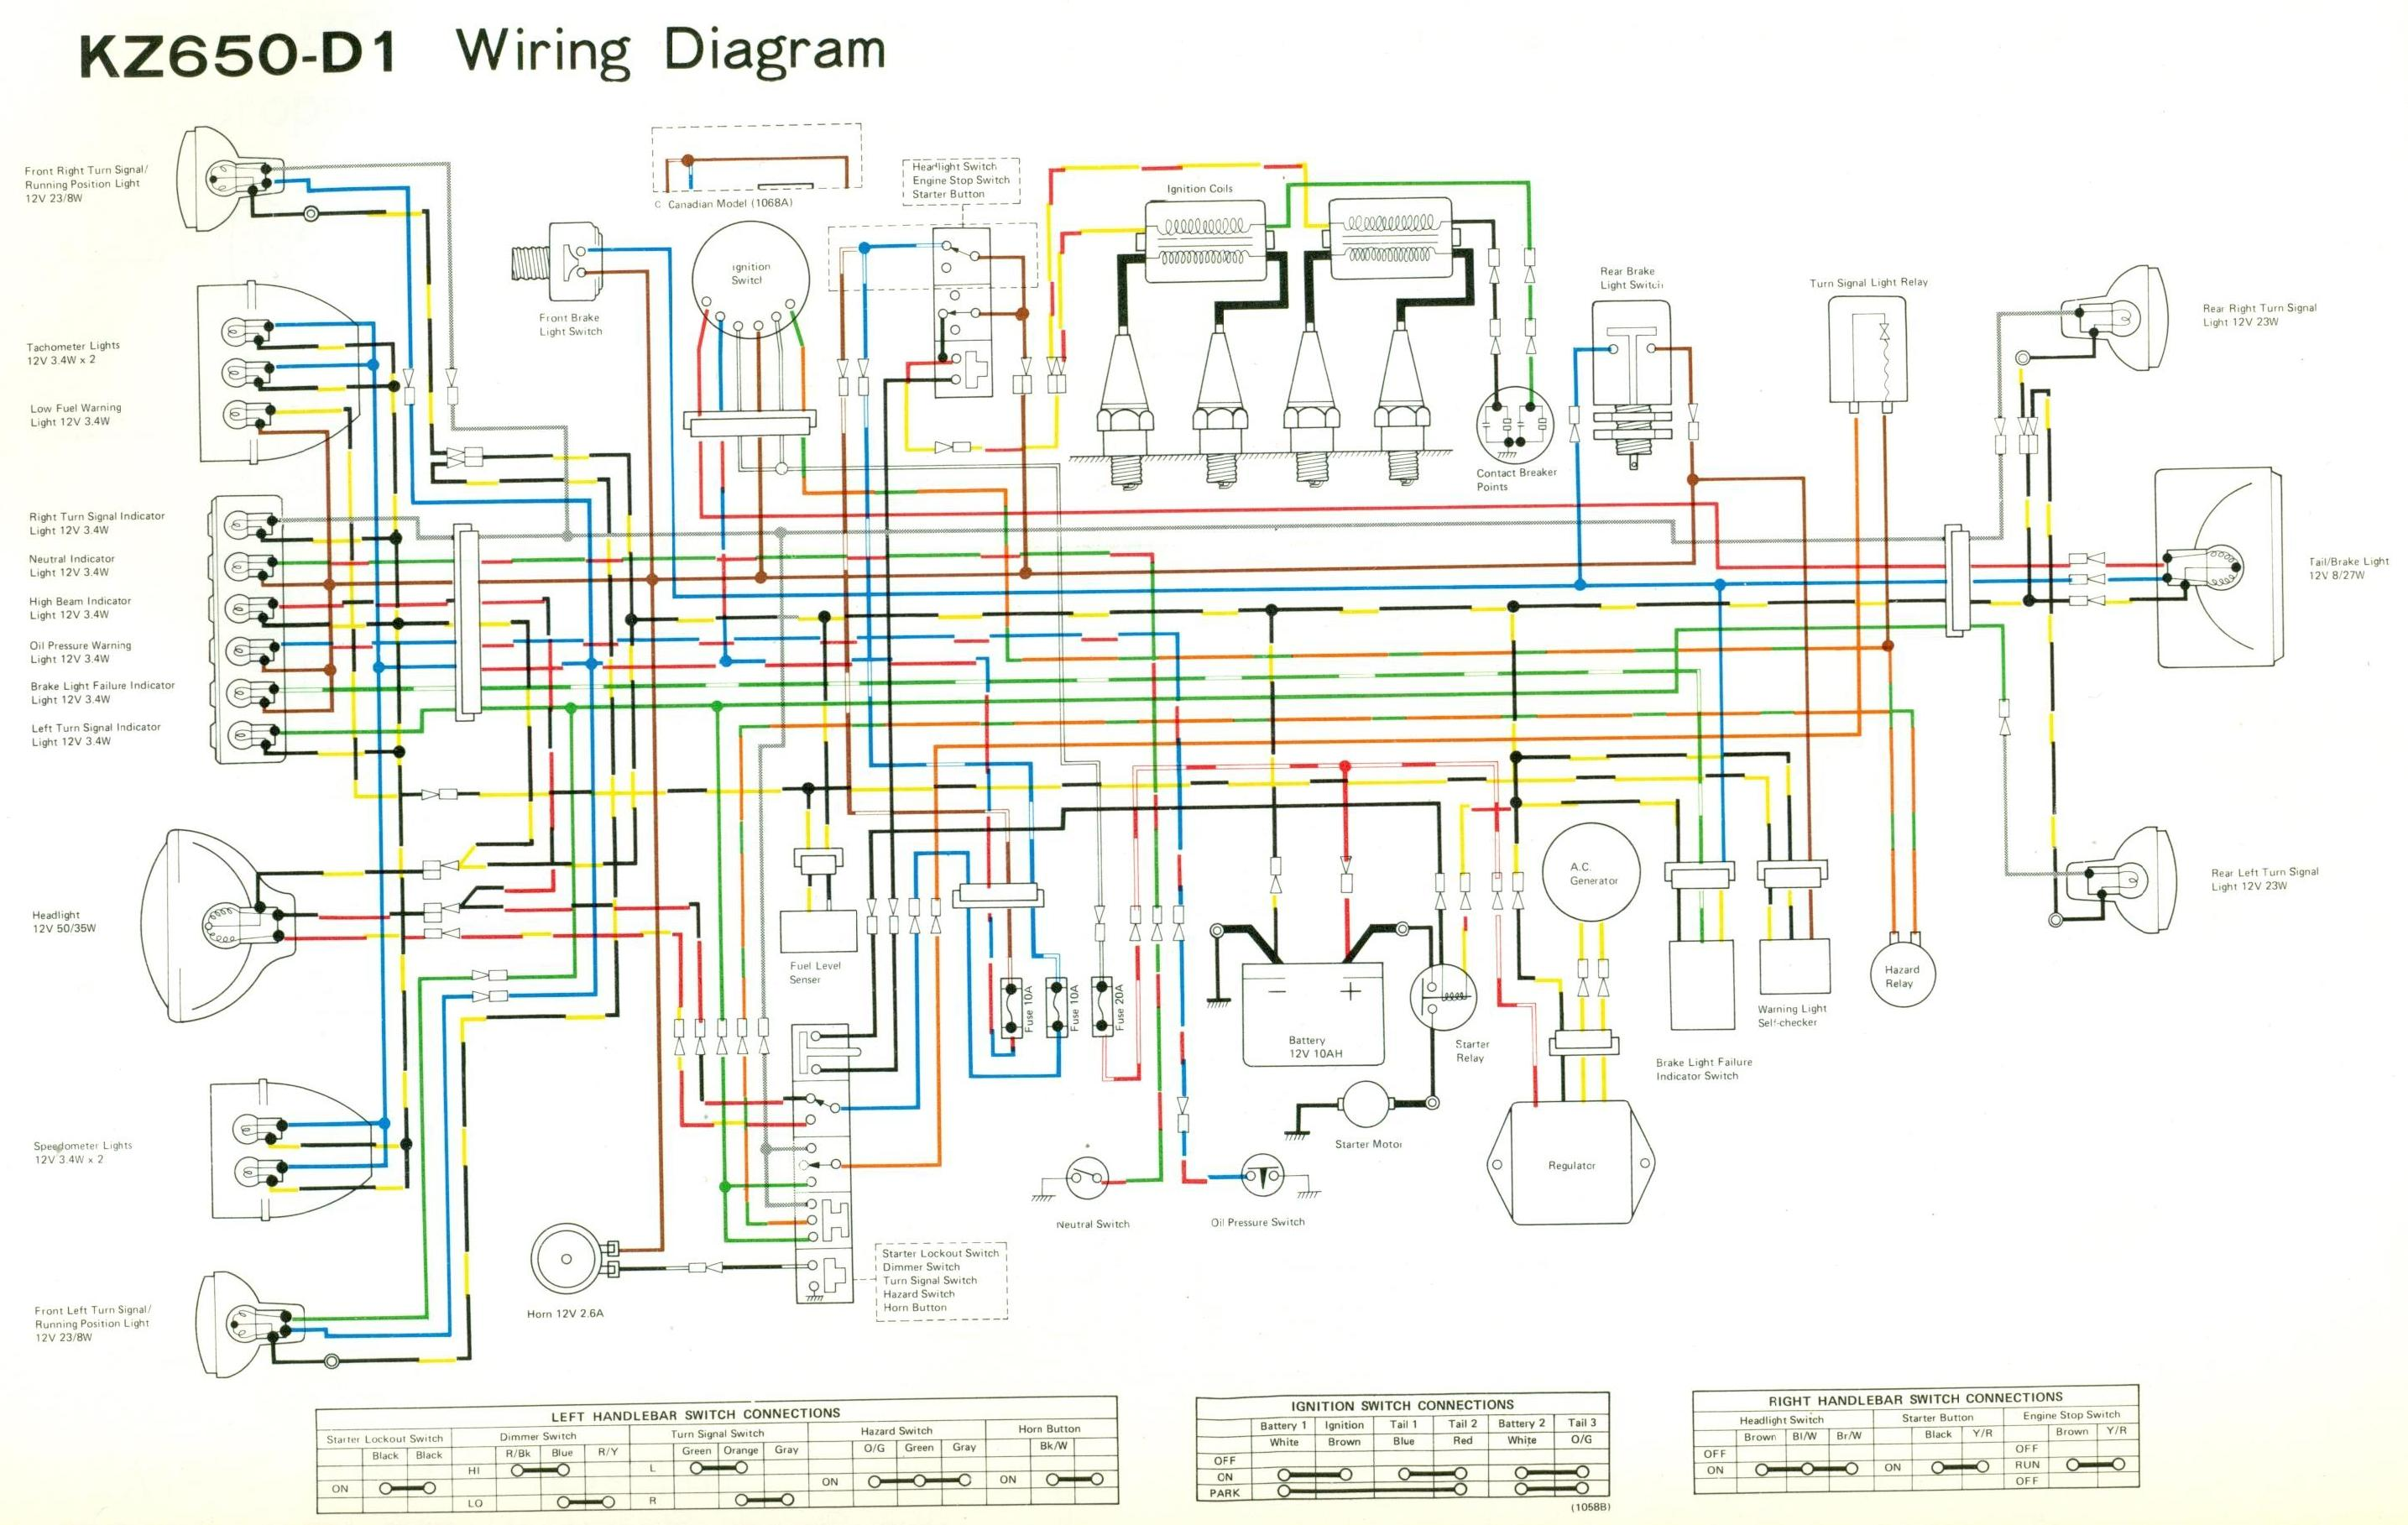 KZ650 D wiring diagrams 2009 kawasaki ninja 250r wiring diagram at alyssarenee.co